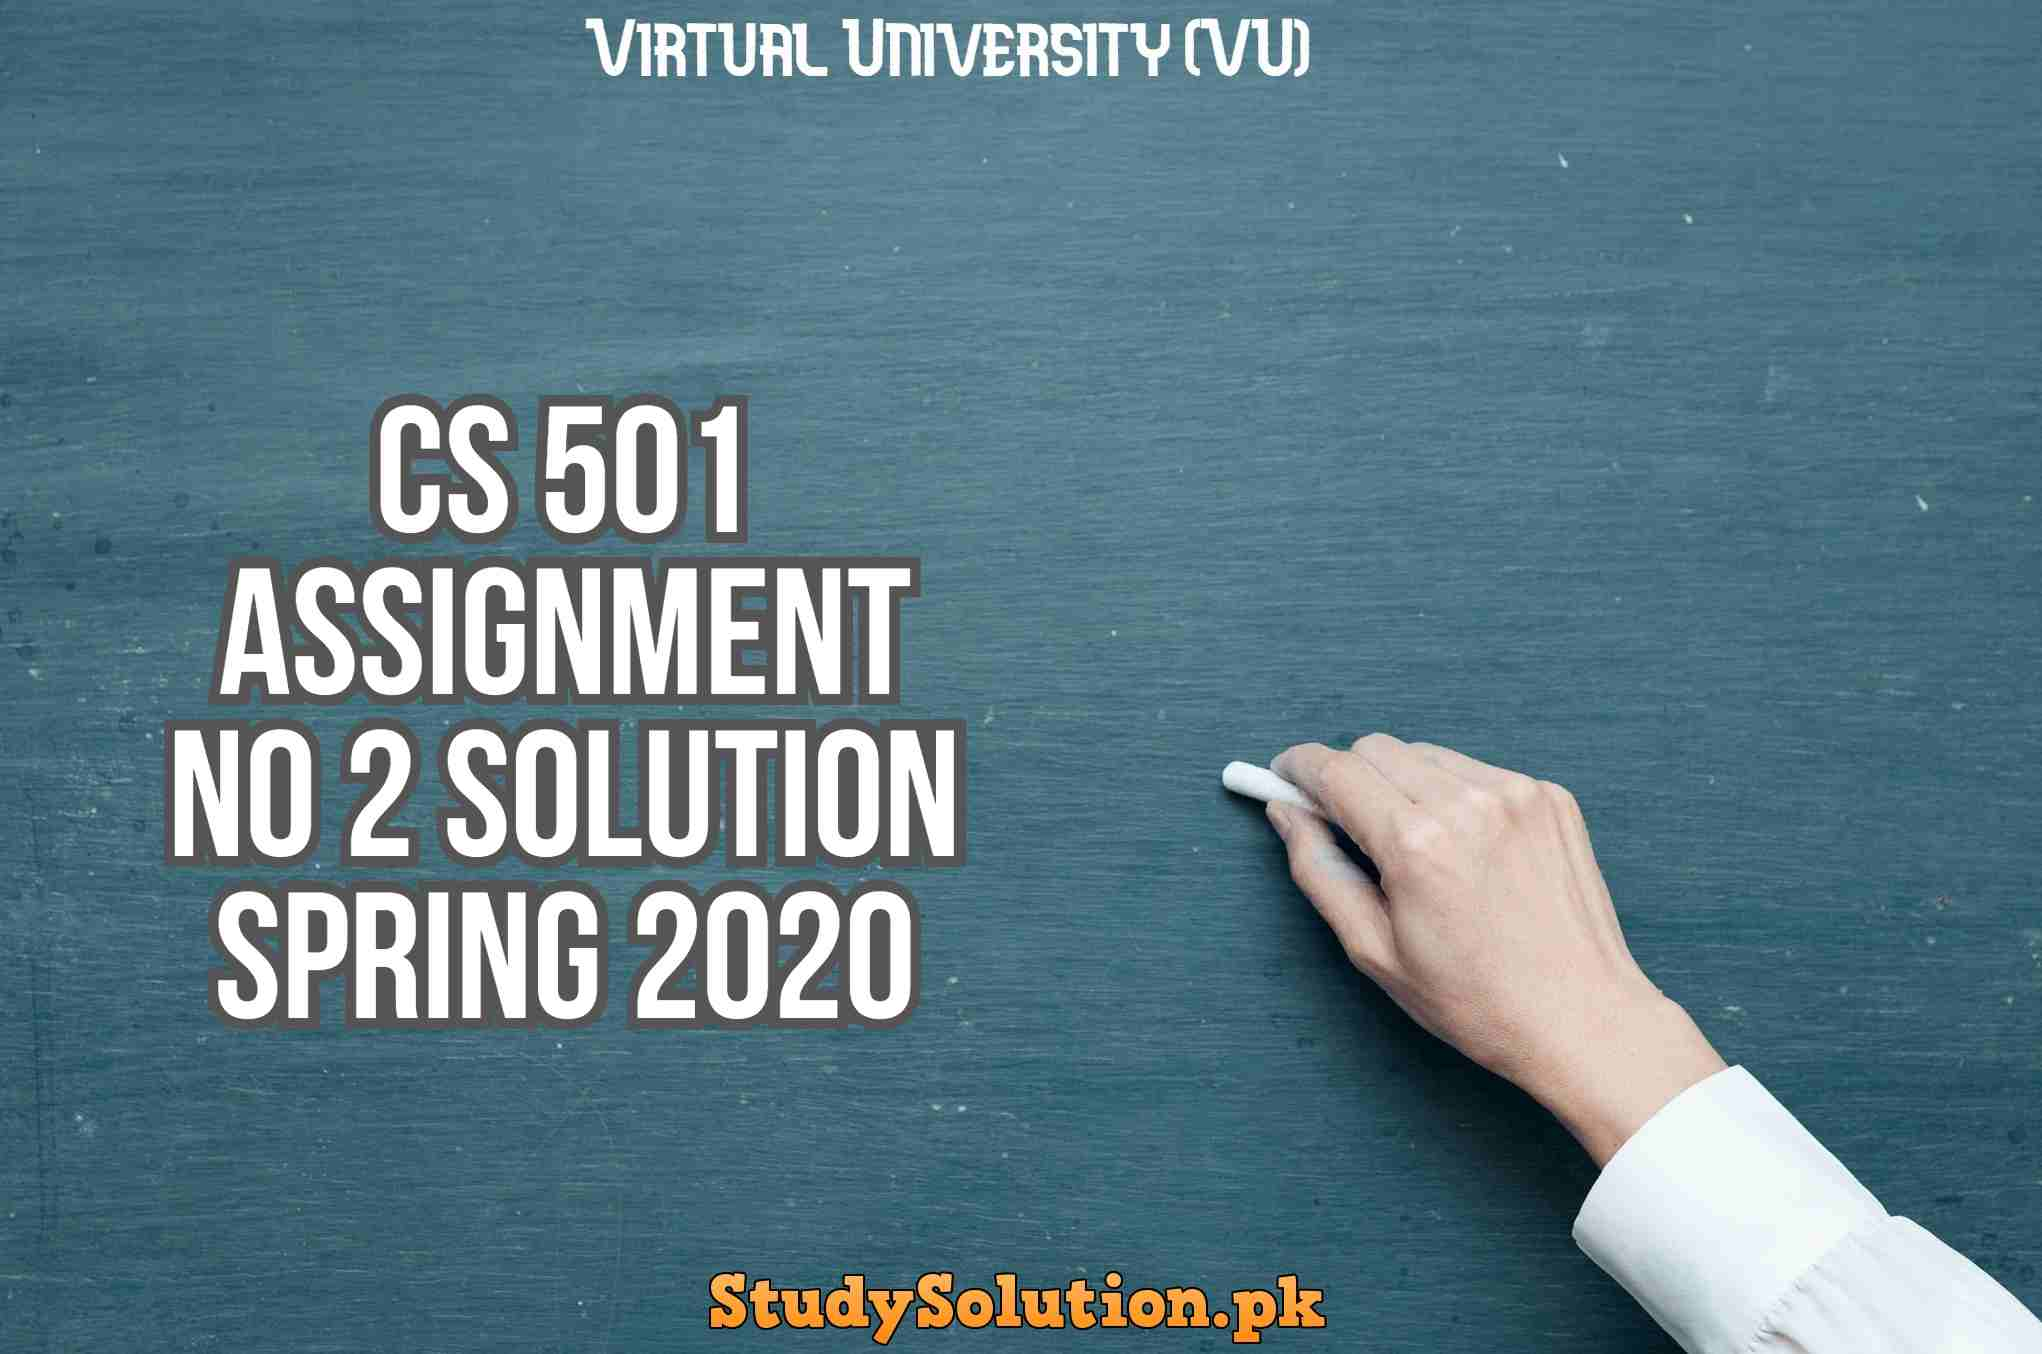 CS 501 Assignment No 2 Solution Spring 2020